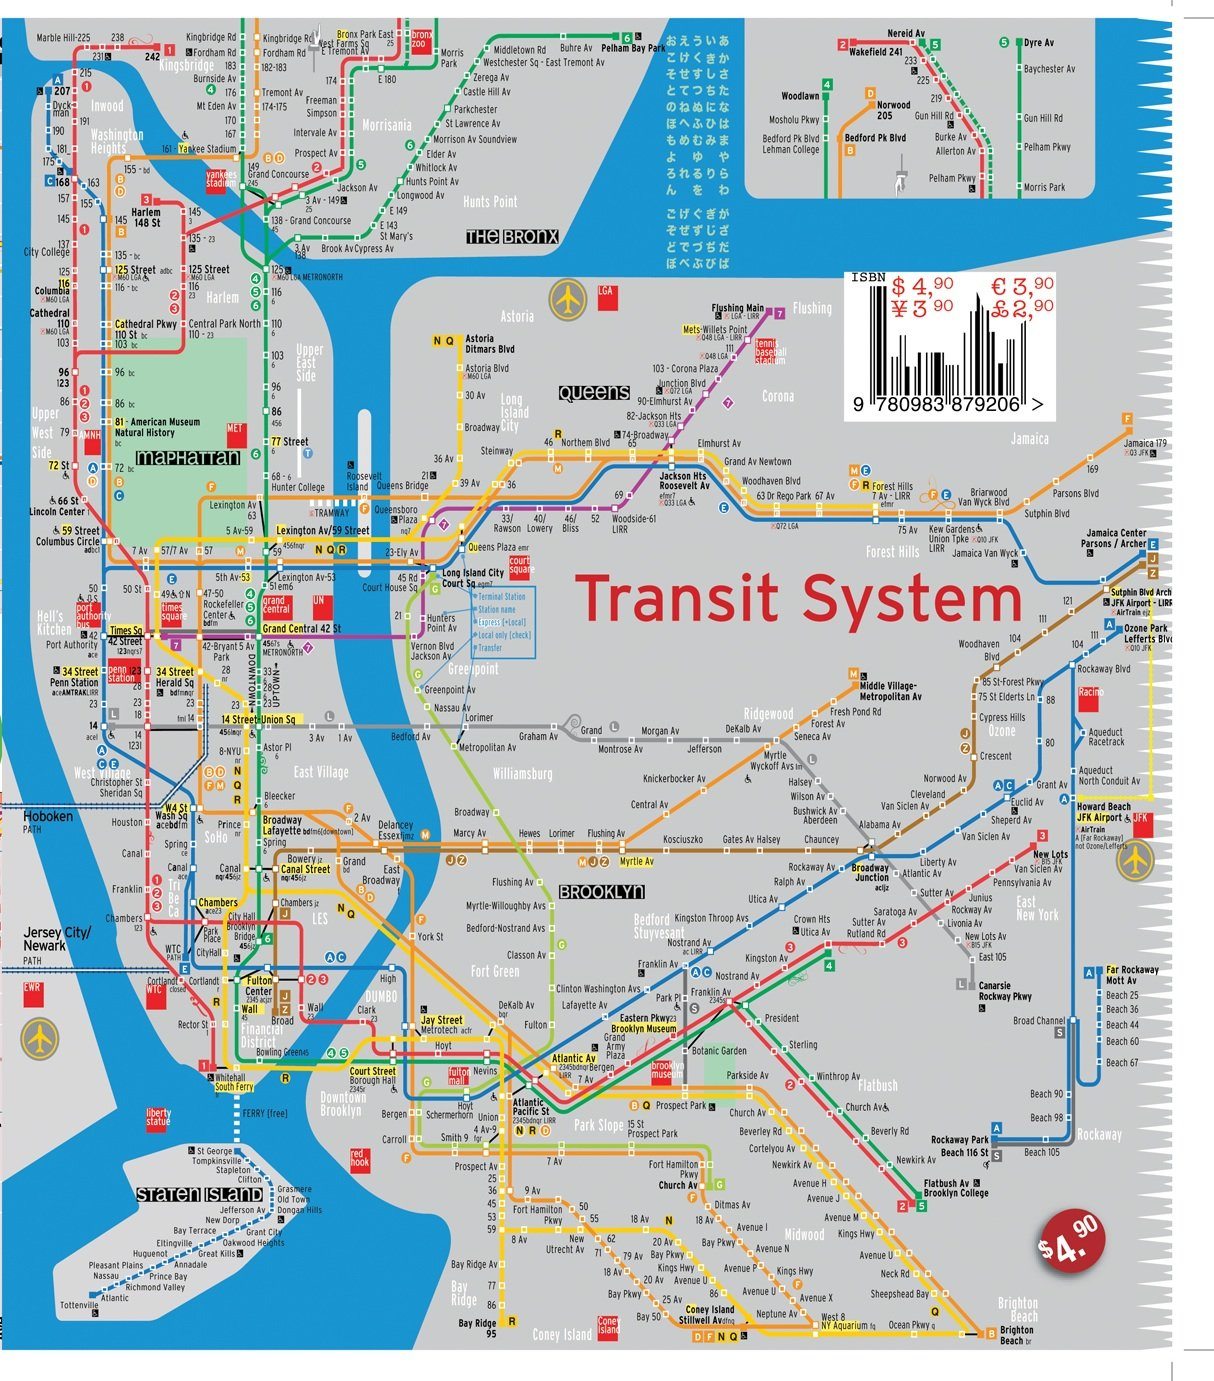 Nyc Subway Map Over Street Map.Terramaps Nyc Manhattan Street And Subway Map Waterproof Pocket